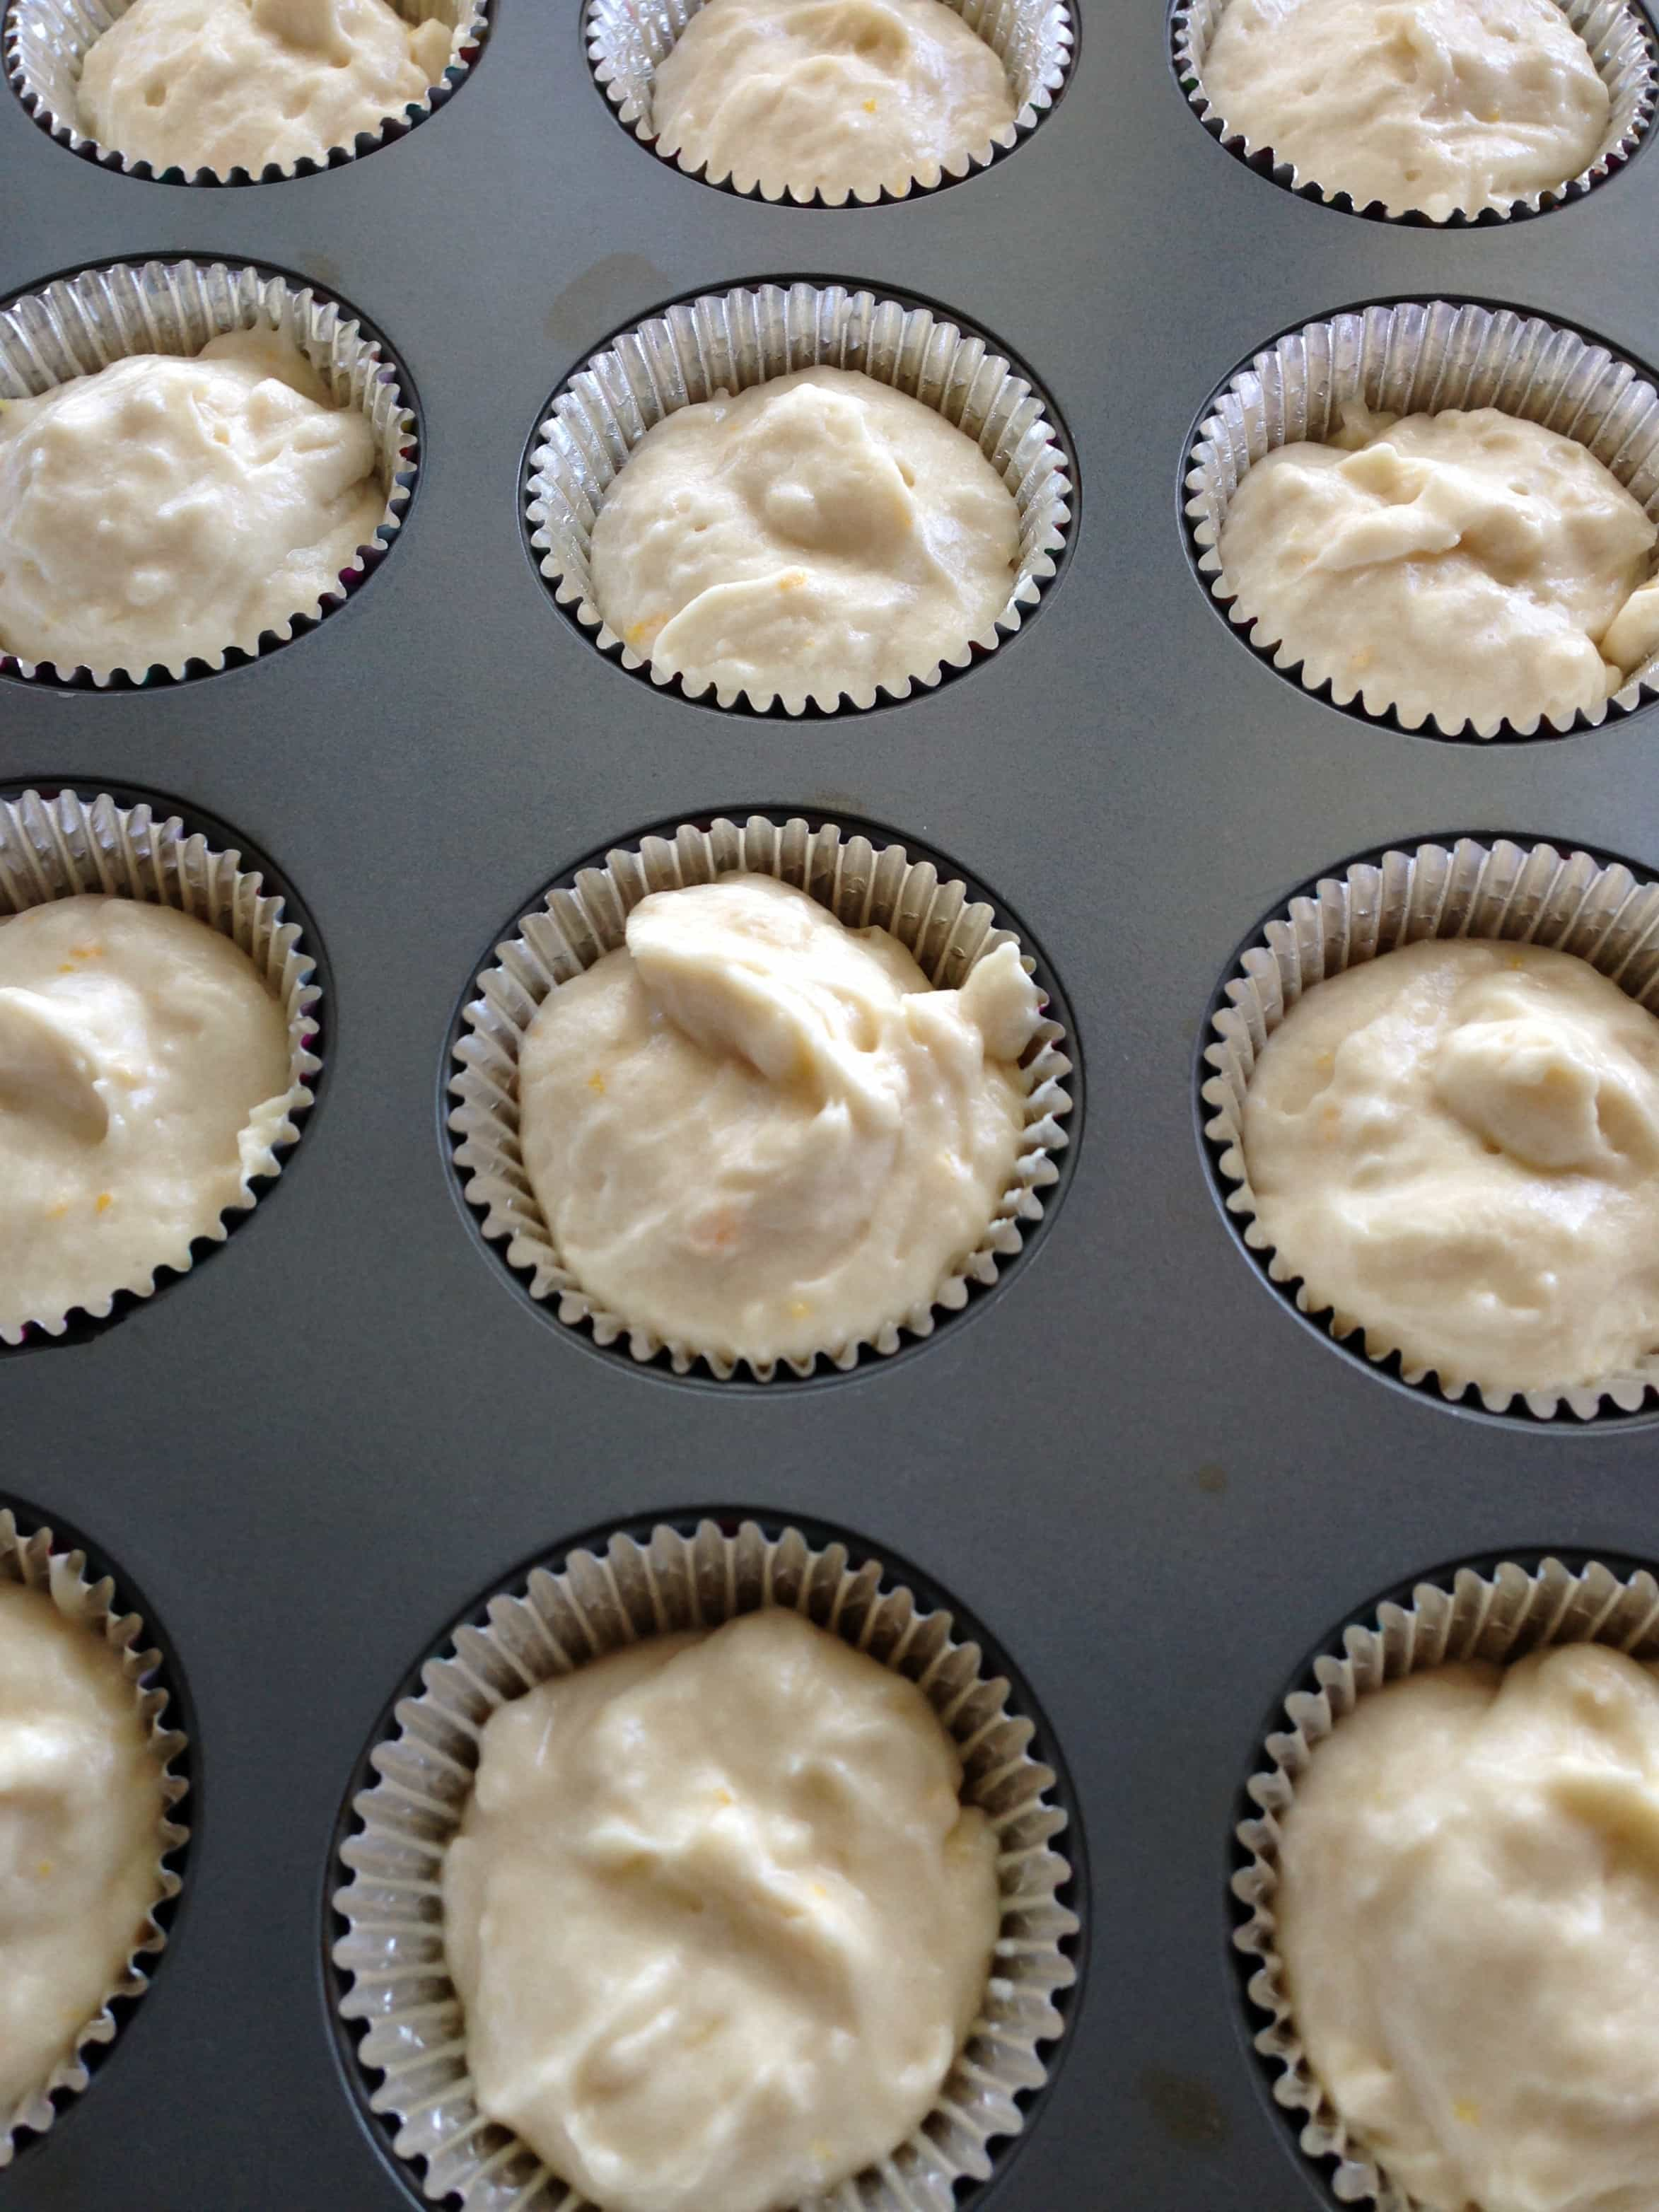 Lemon cupcake batter in cupcake liners in a muffin tin.